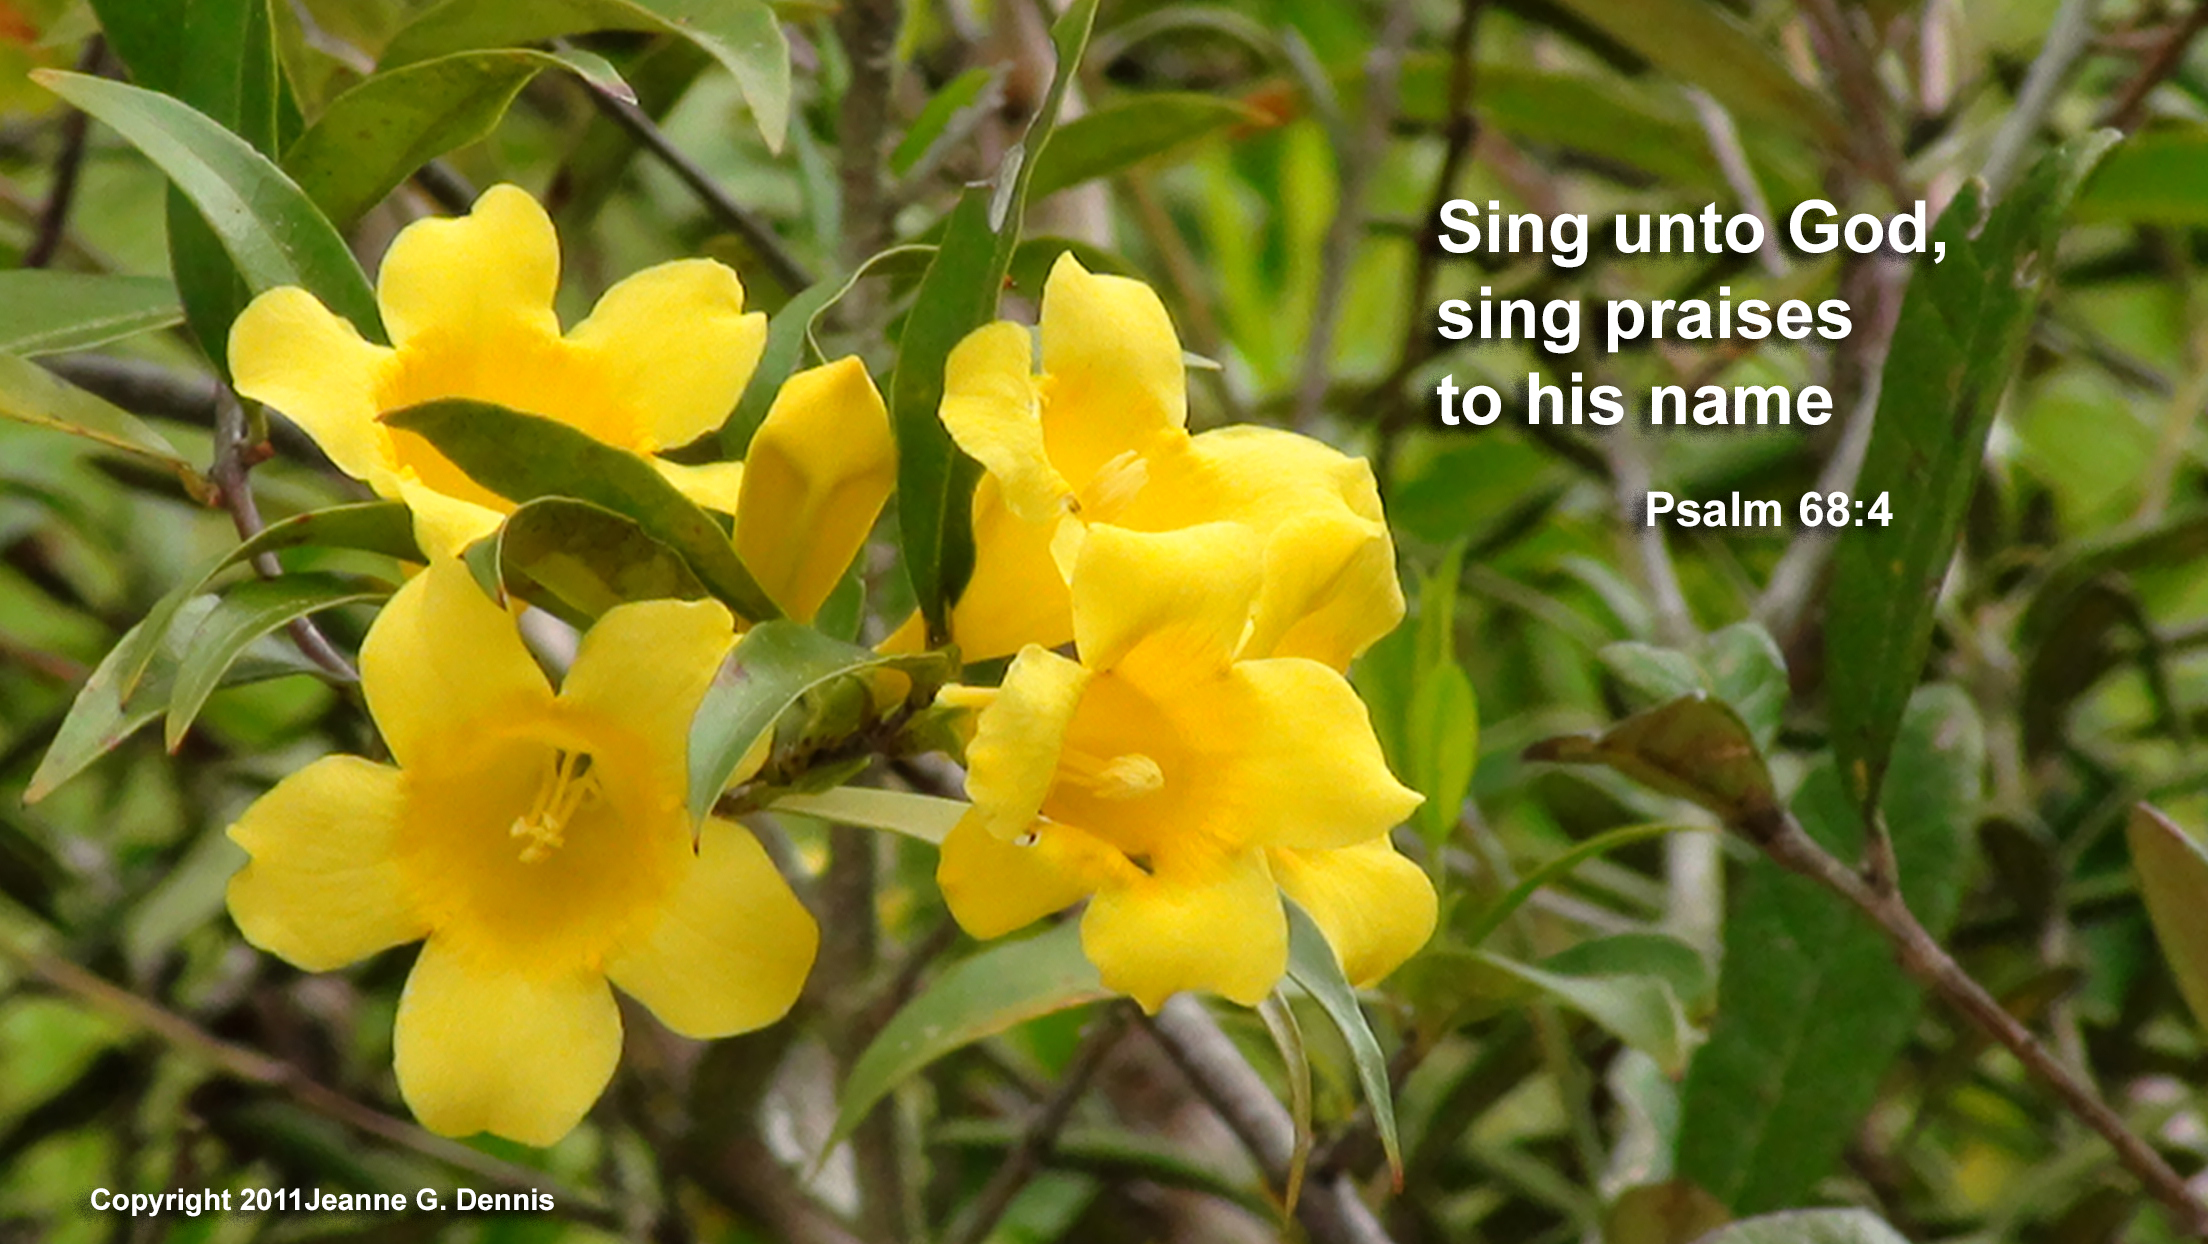 Sing Unto God; Sing praises to His name. Psalm 68:4